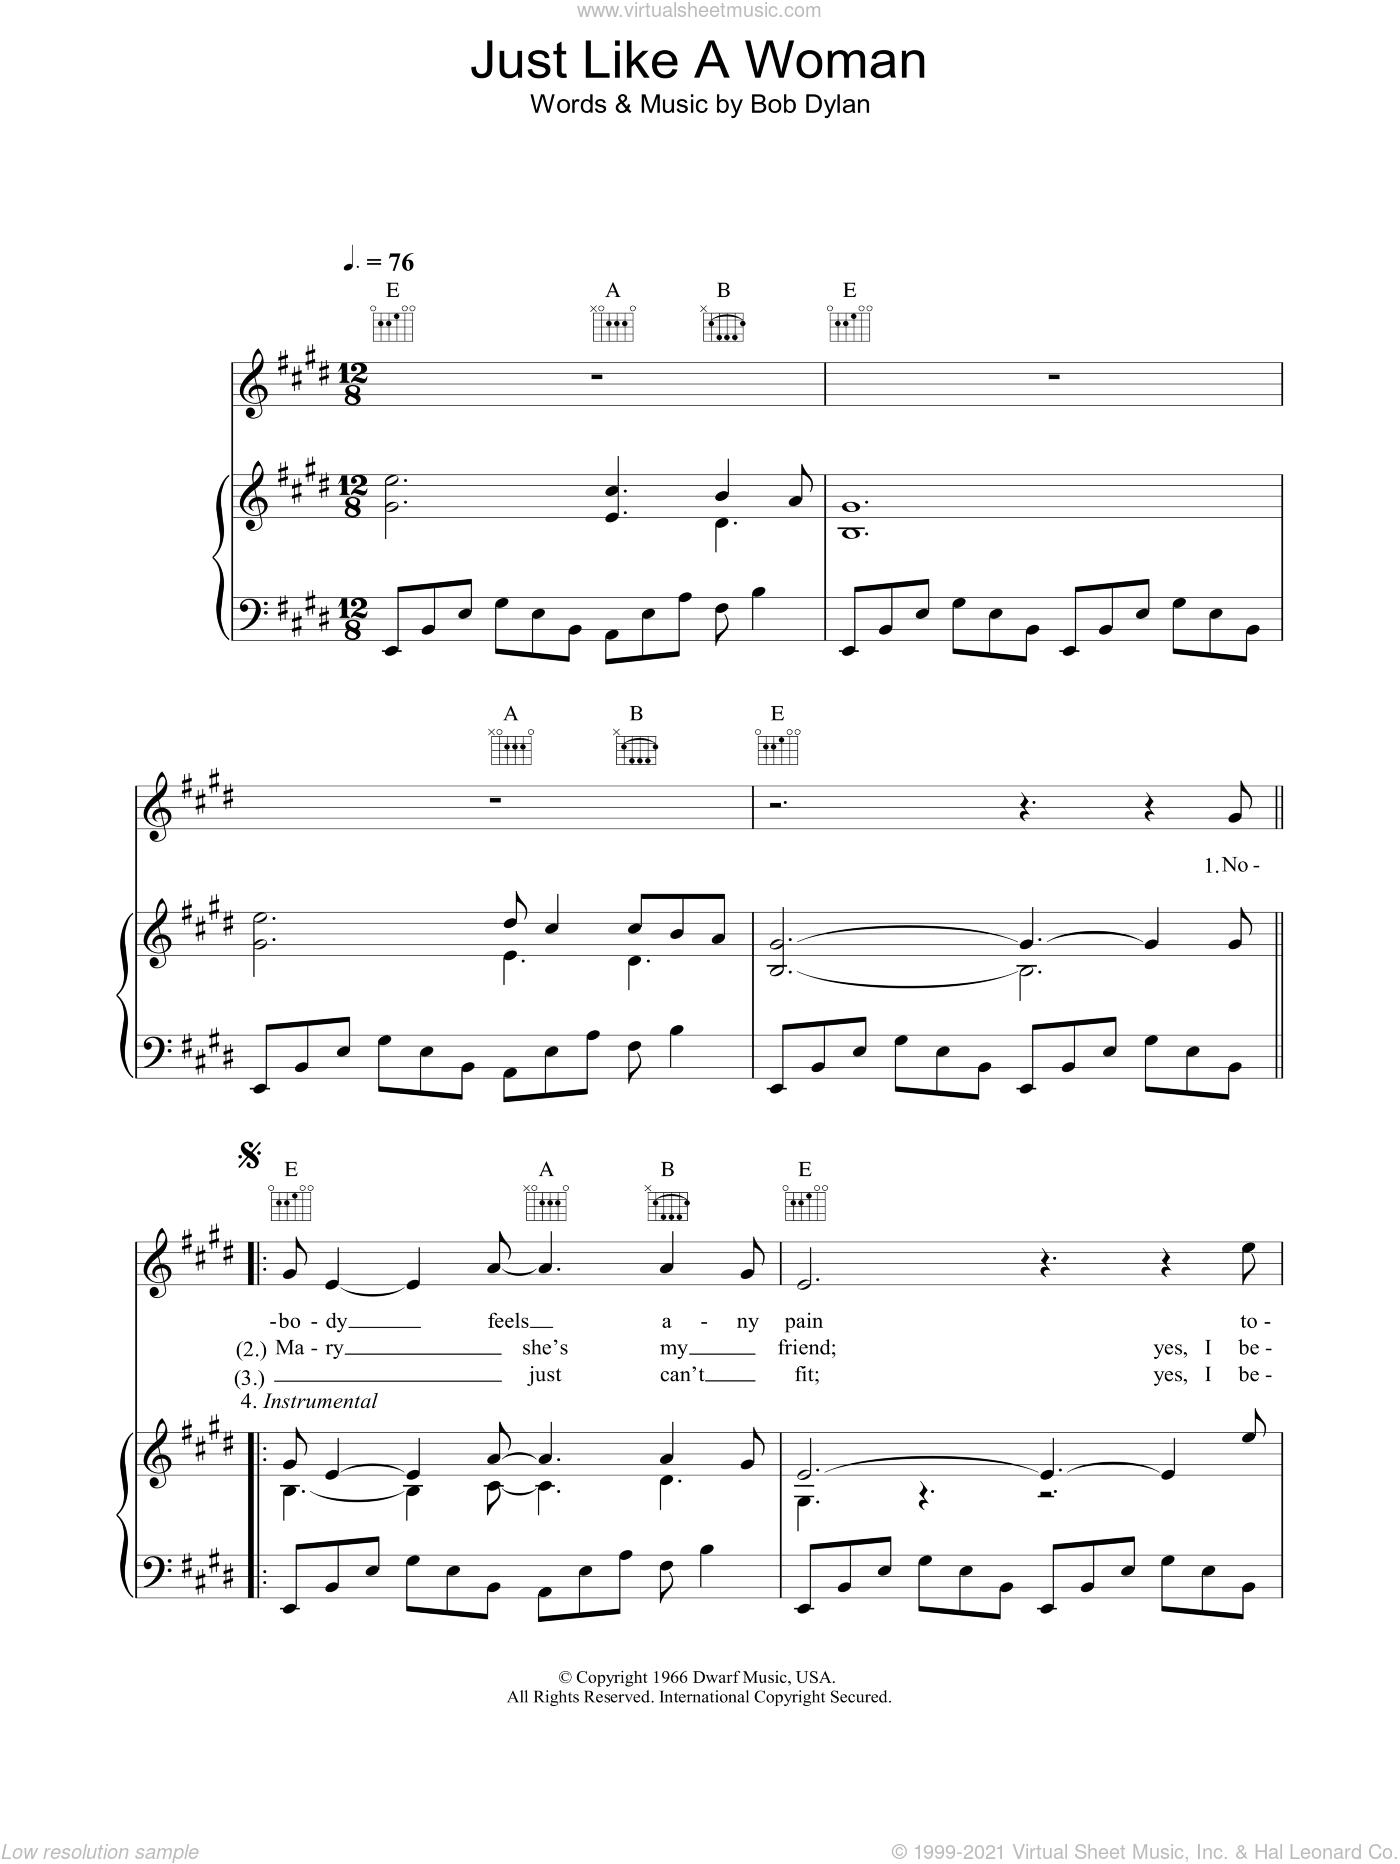 Just Like A Woman sheet music for voice, piano or guitar by Bob Dylan. Score Image Preview.